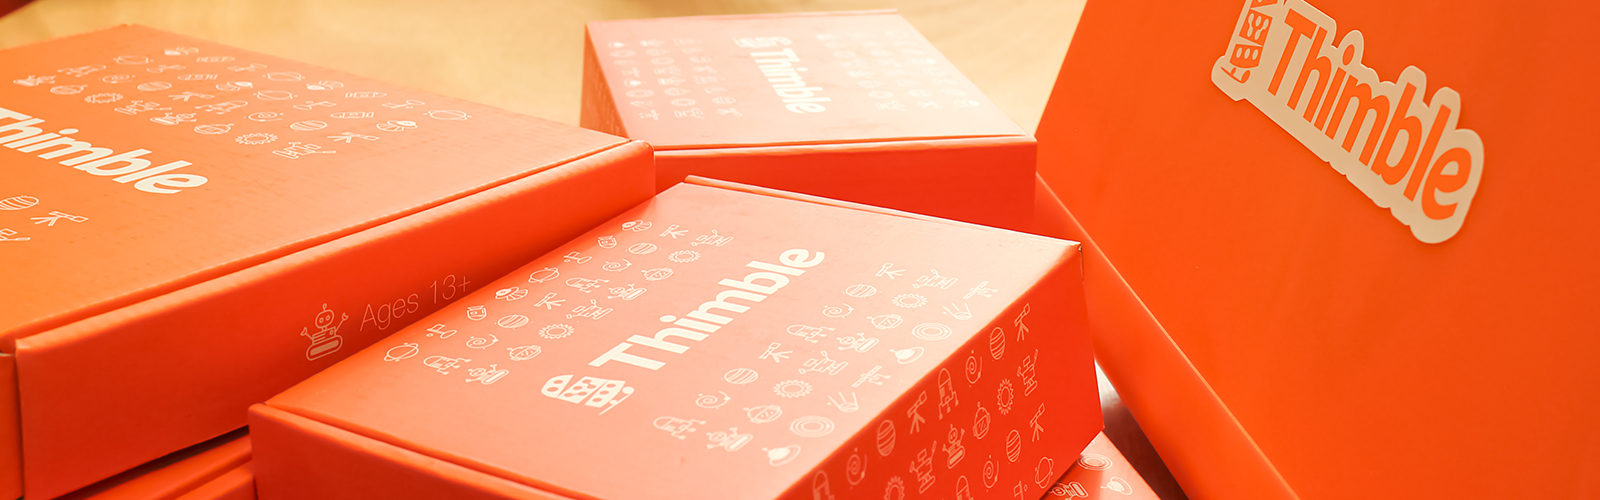 Thimble.io's home-delivered toy kits make electronics more accessible, inspiring, and fun.  <span class='image-credits'>Anthony Ramirez</span>